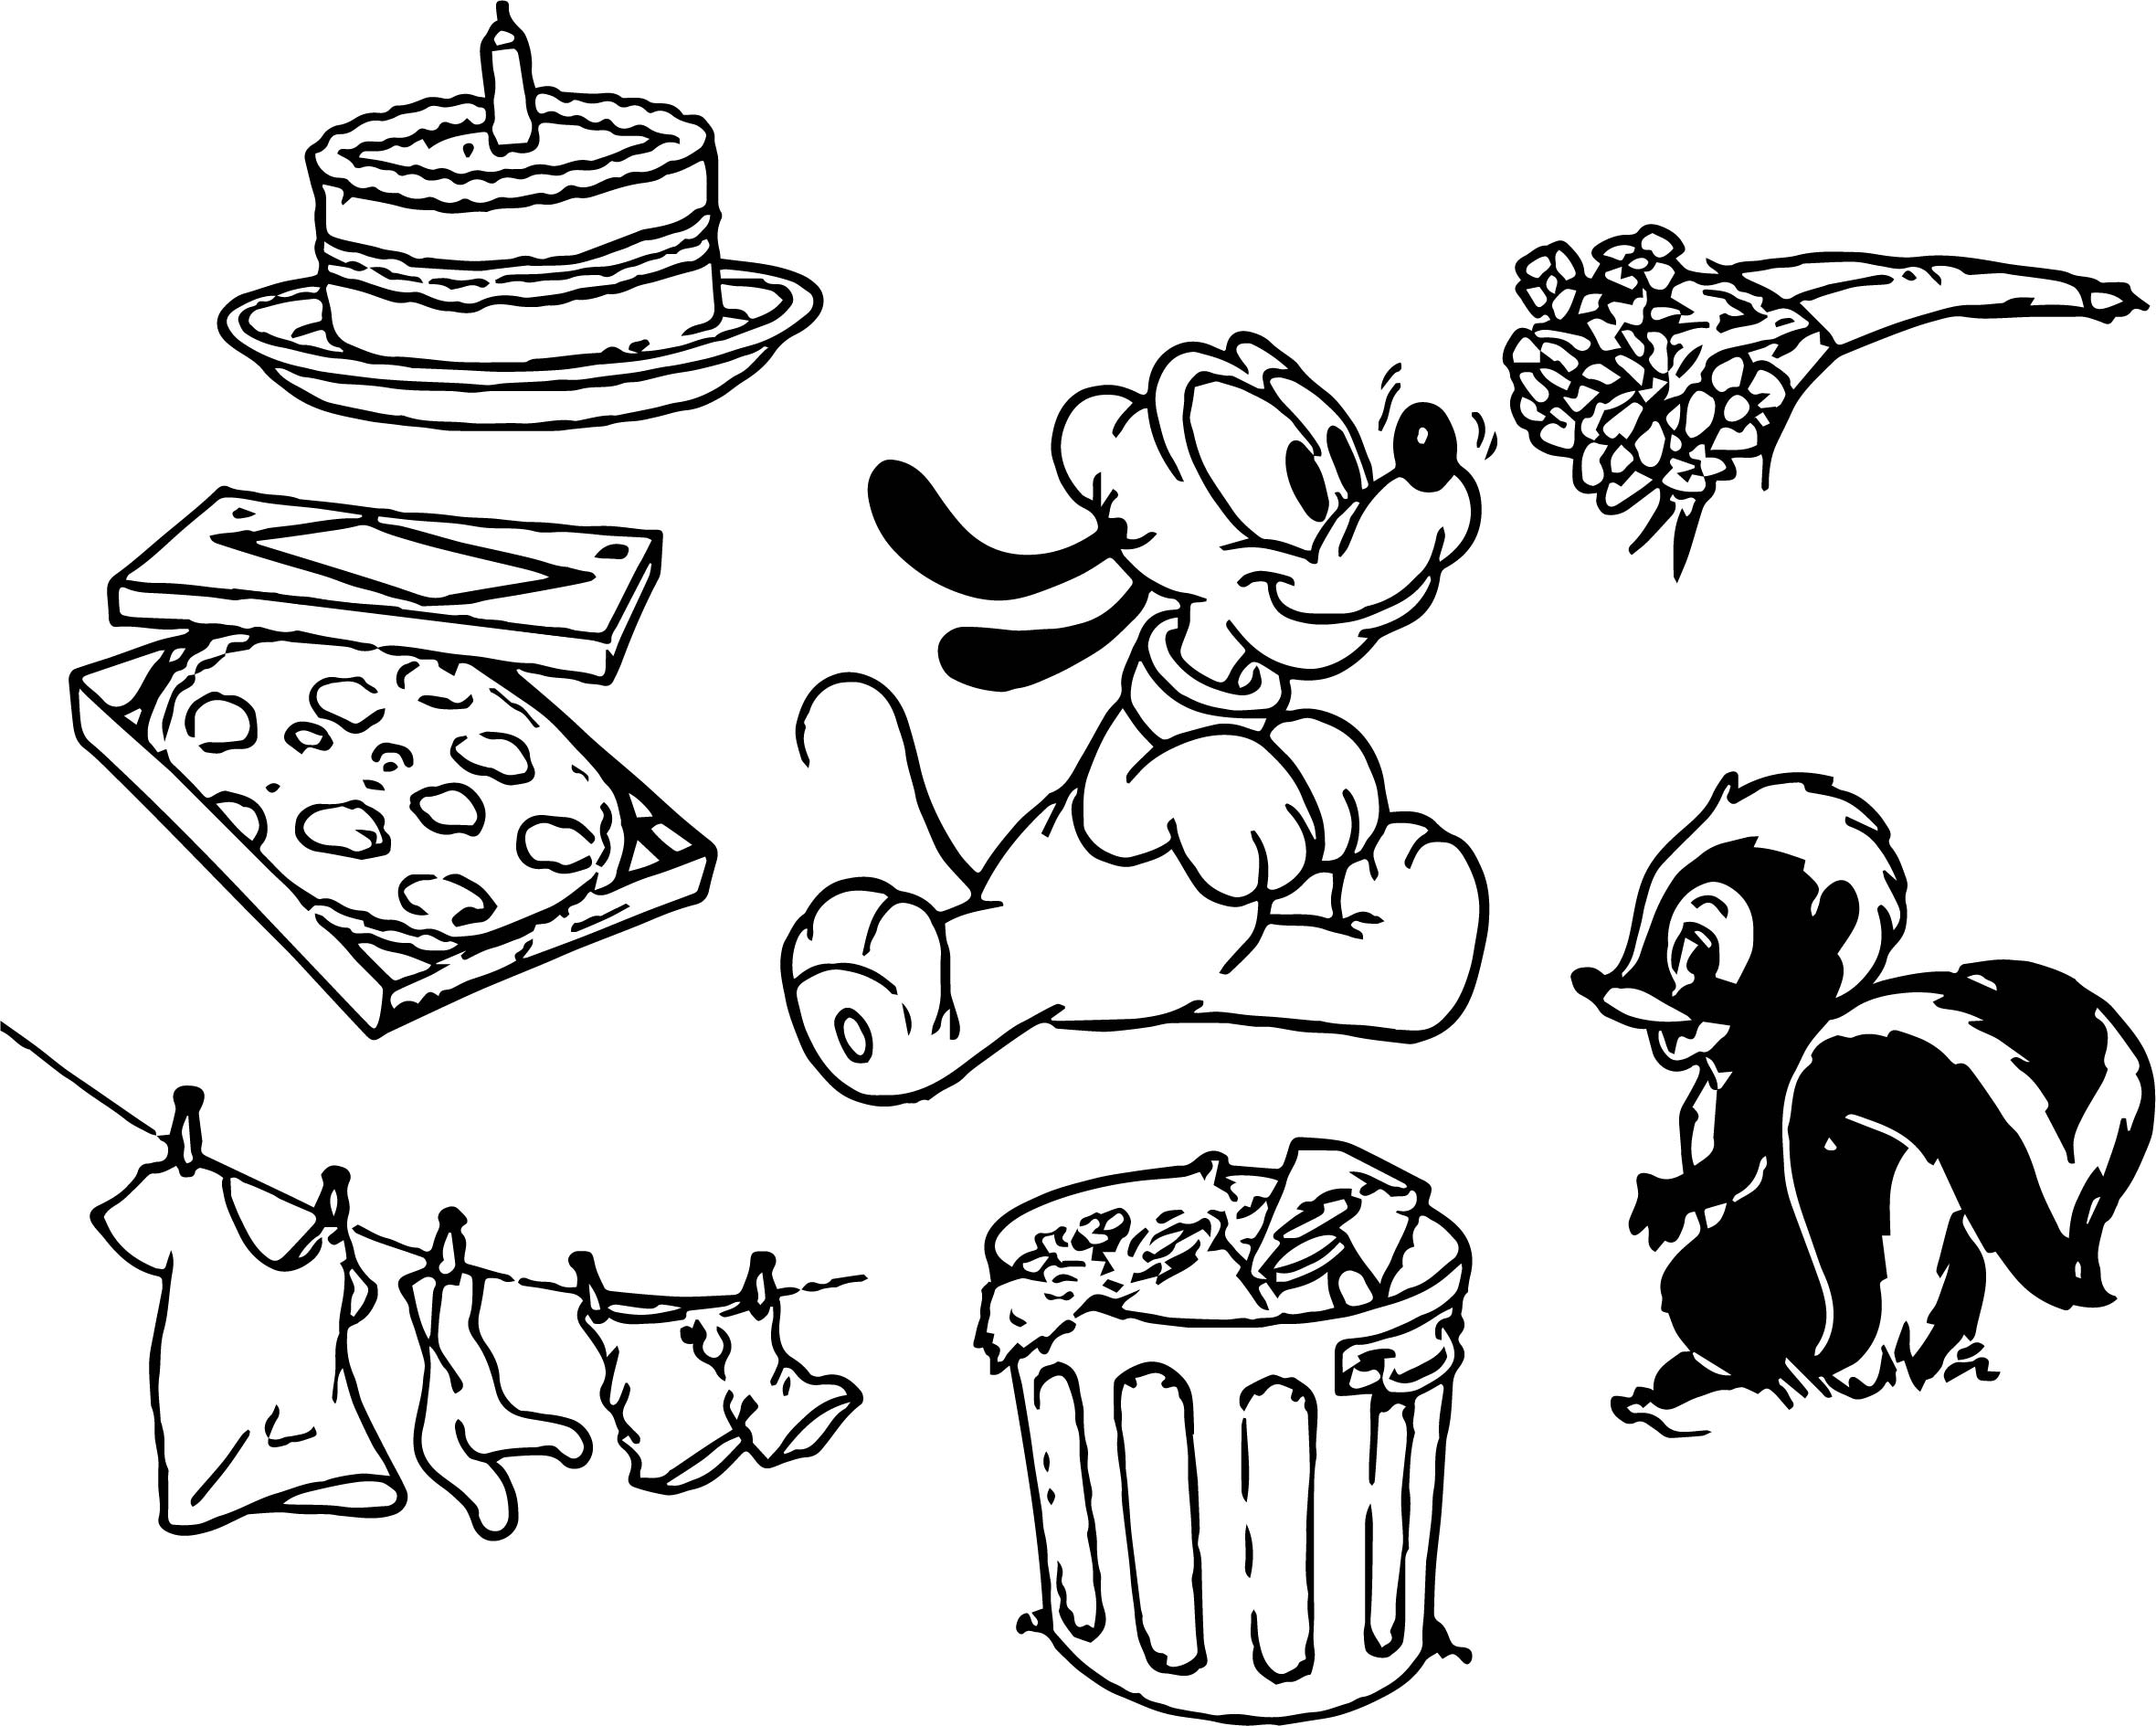 Baby Pluto Set Coloring Page